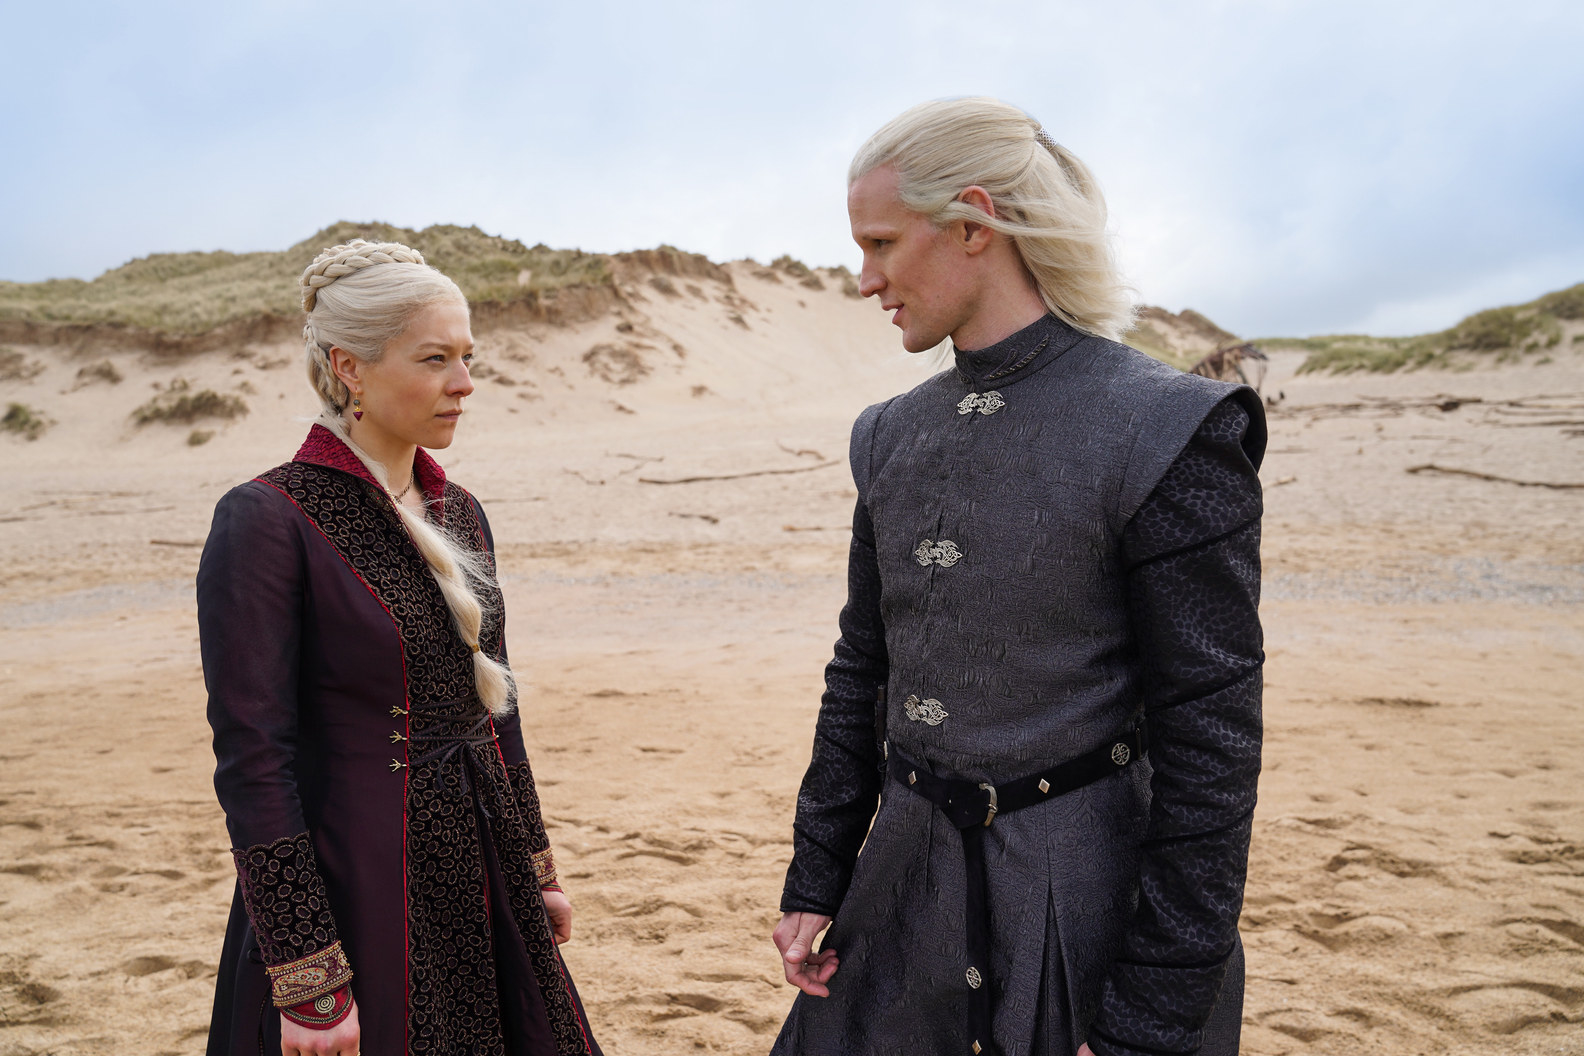 Two blonde characters speak to each other while standing in a sandy area